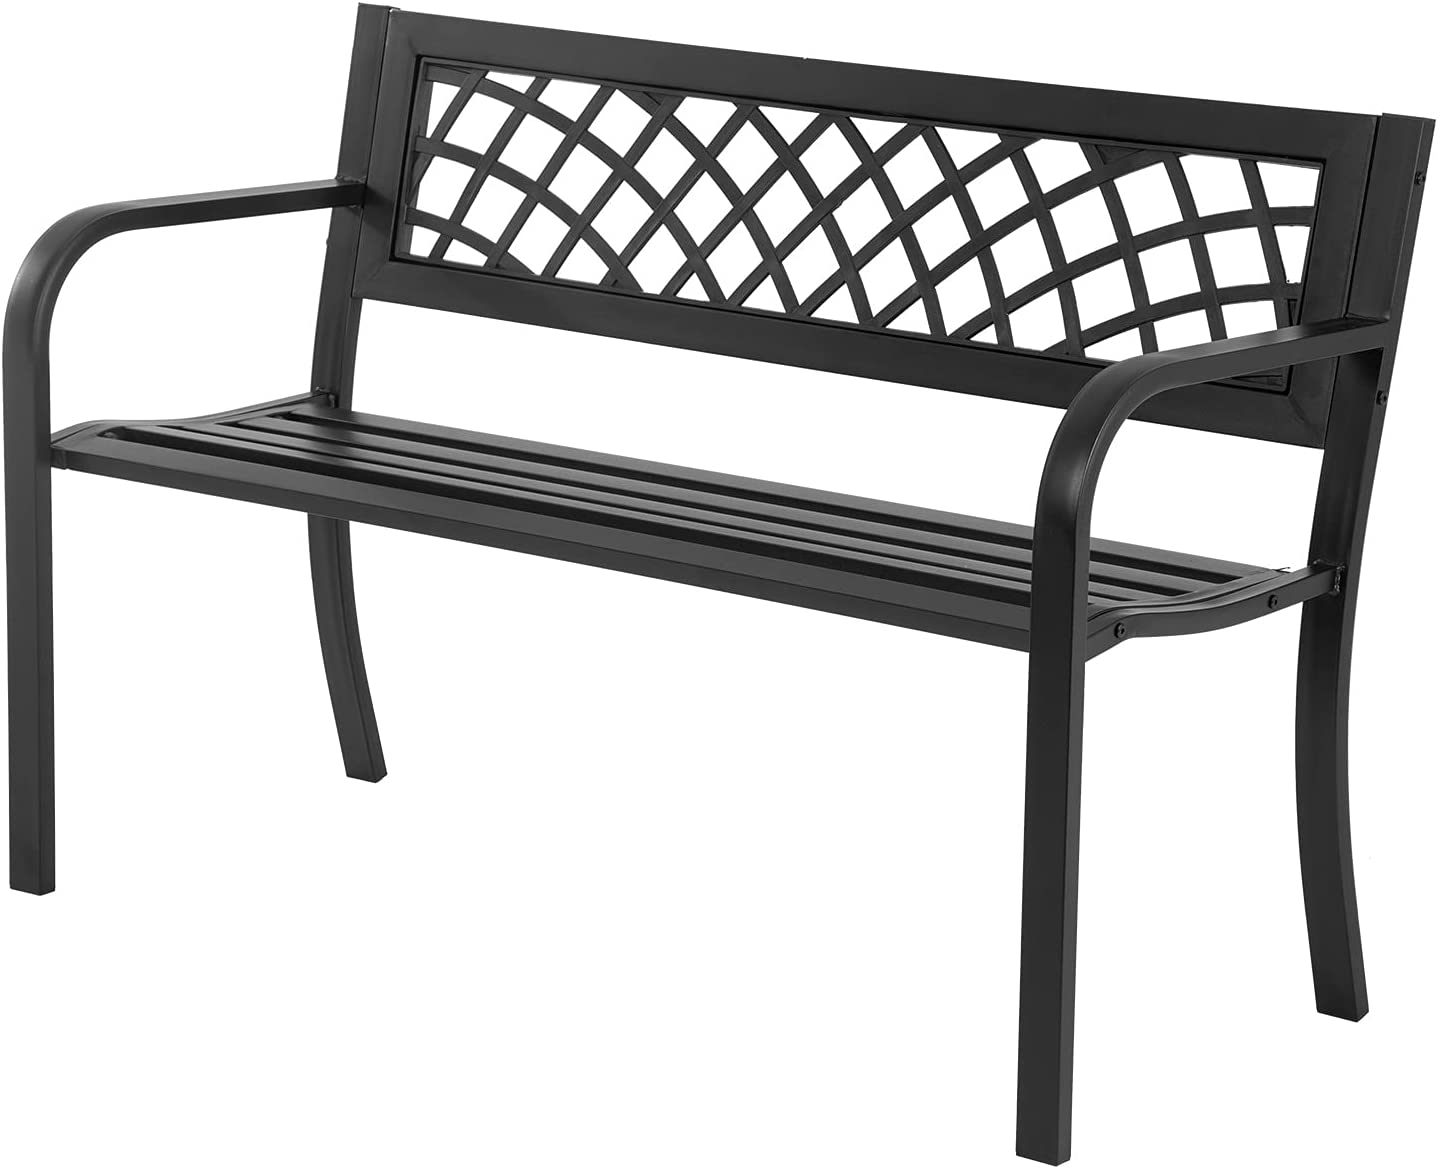 Garden Bench,Outdoor Benches,Iron Steel Frame Patio Bench with Mesh Pattern and Plastic Backrest Armrests for Lawn Yard Porch Work Entryway,Black